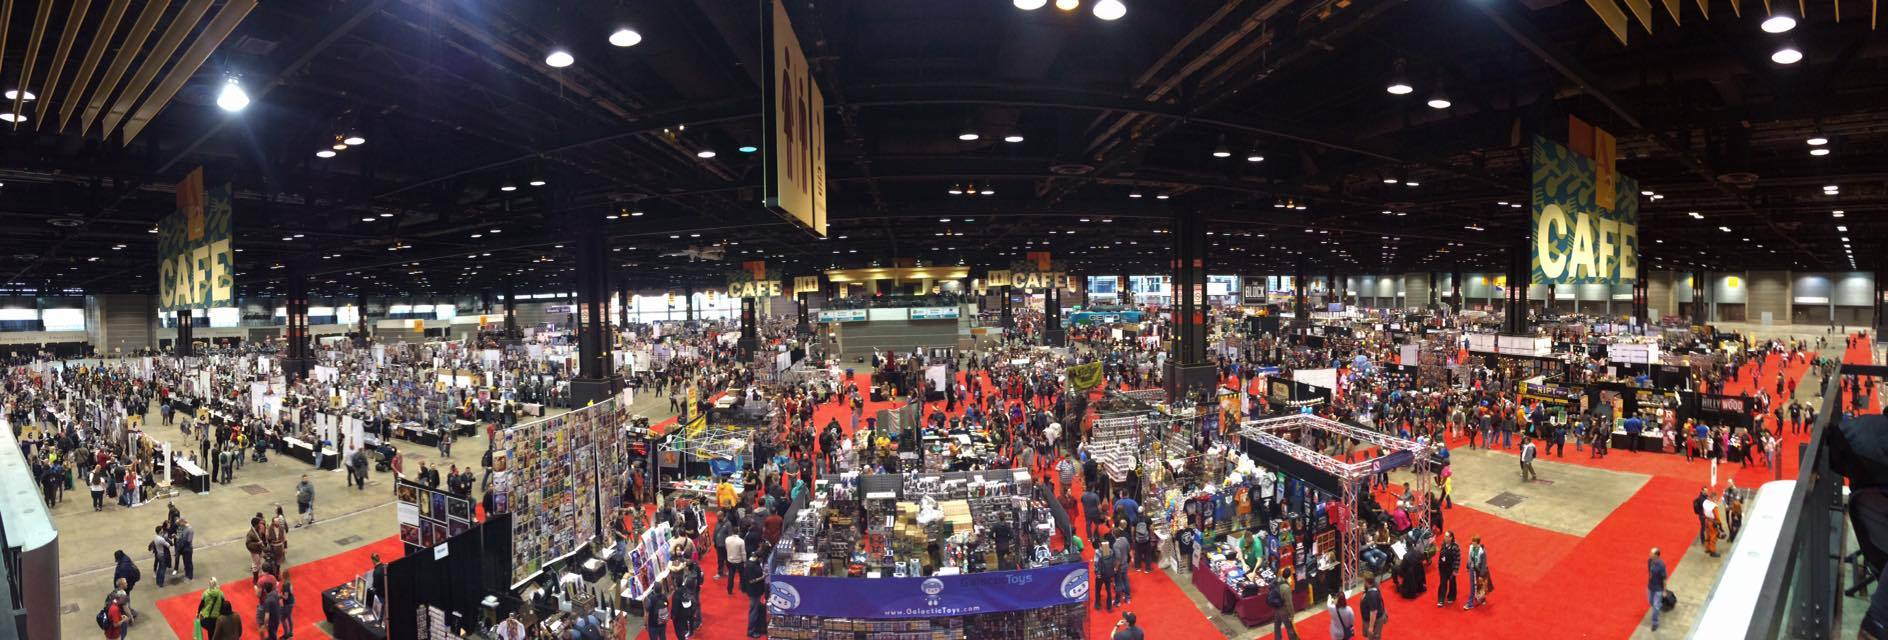 C2E2 Cosplay Exhibit Hall